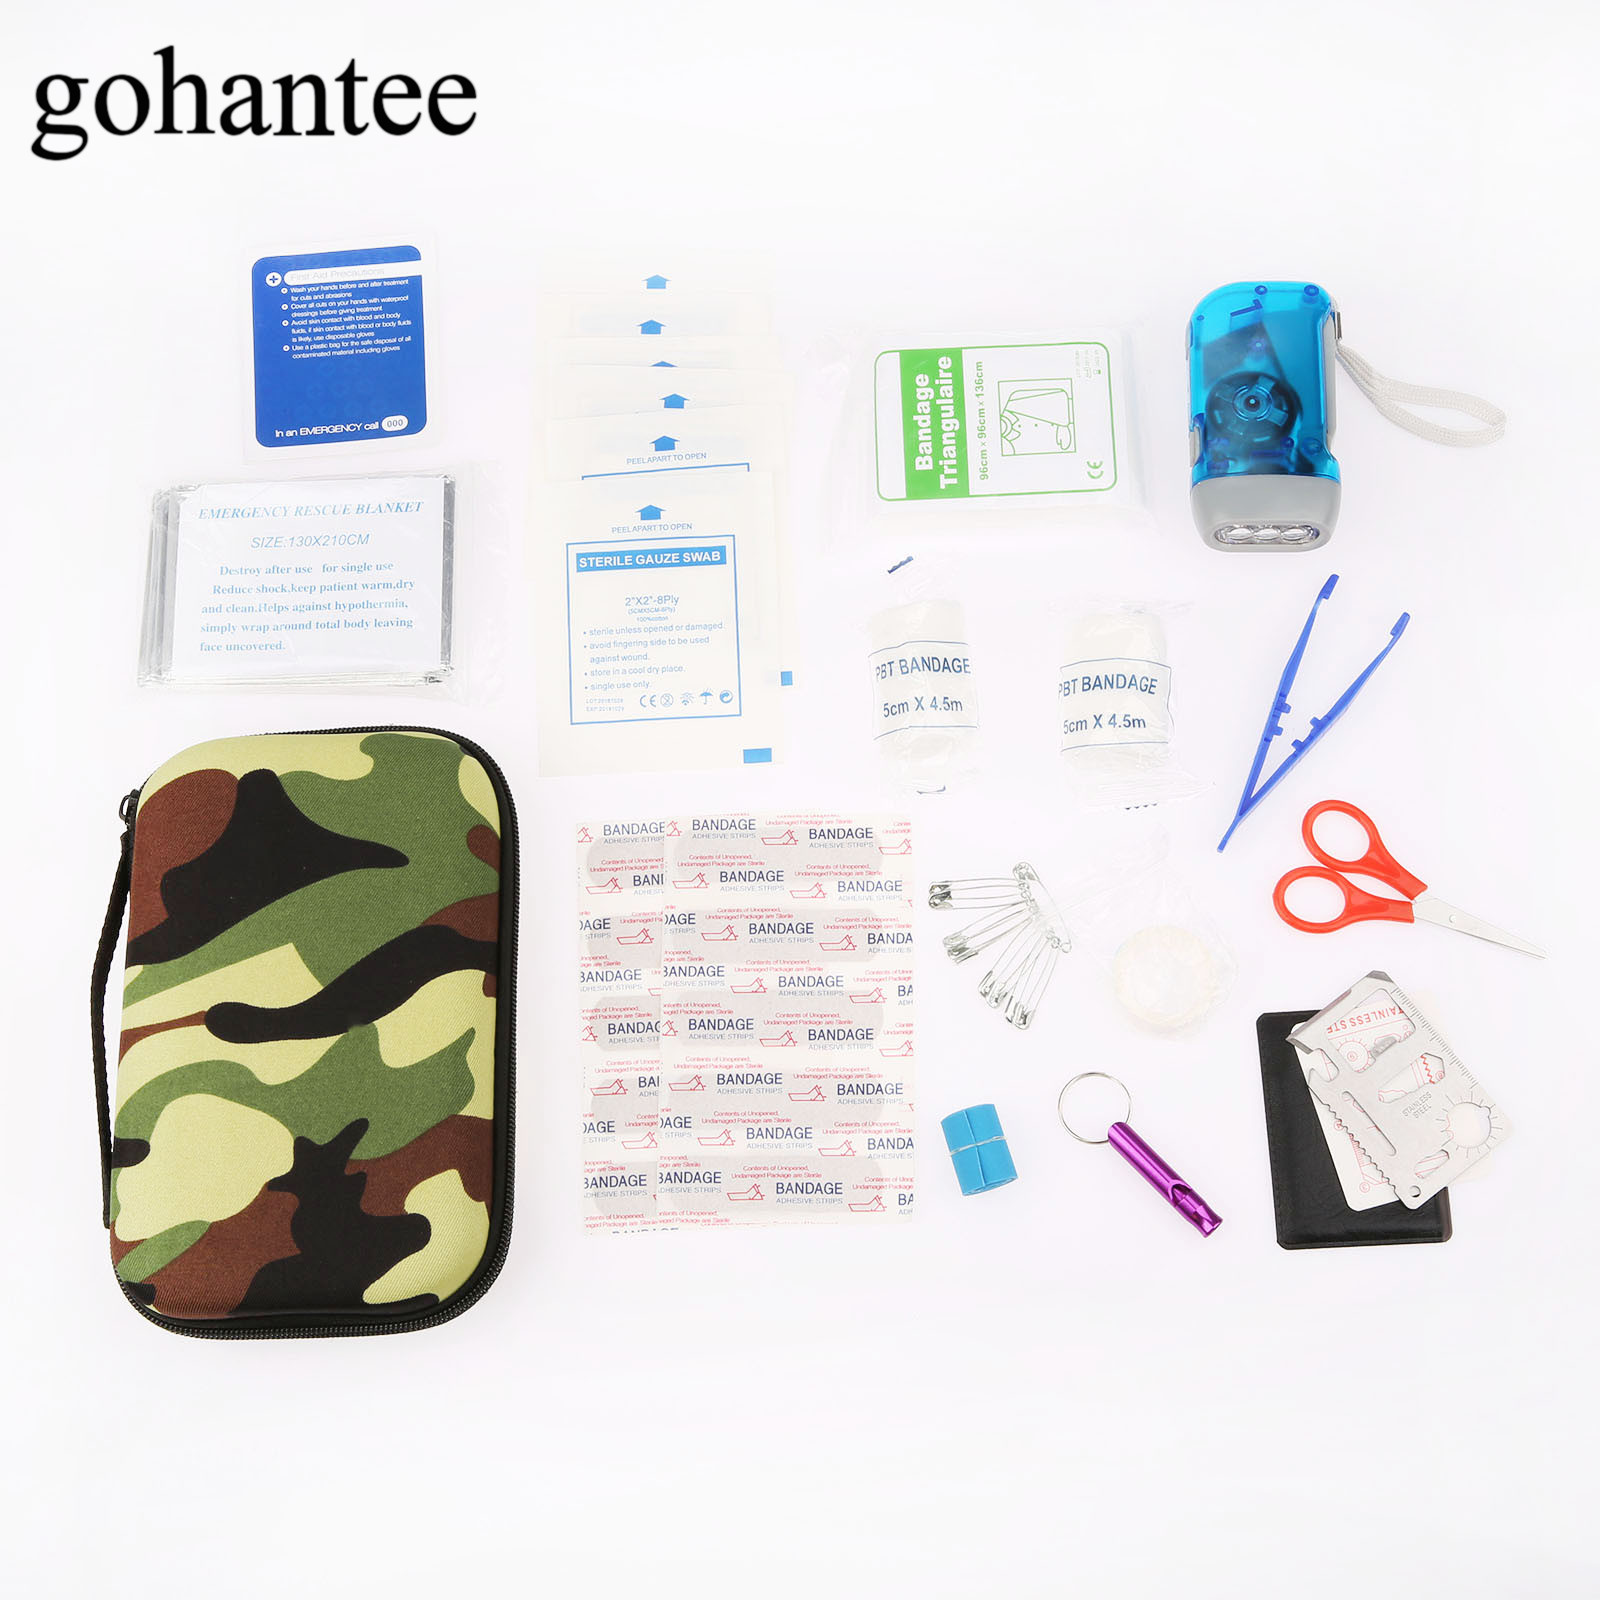 39pcs/Pack (16 kinds) Travel/Home First Aid Kit Medical Emergency Kits Treatment Pack Outdoor Wilderness Survival EVA Pouch Bag